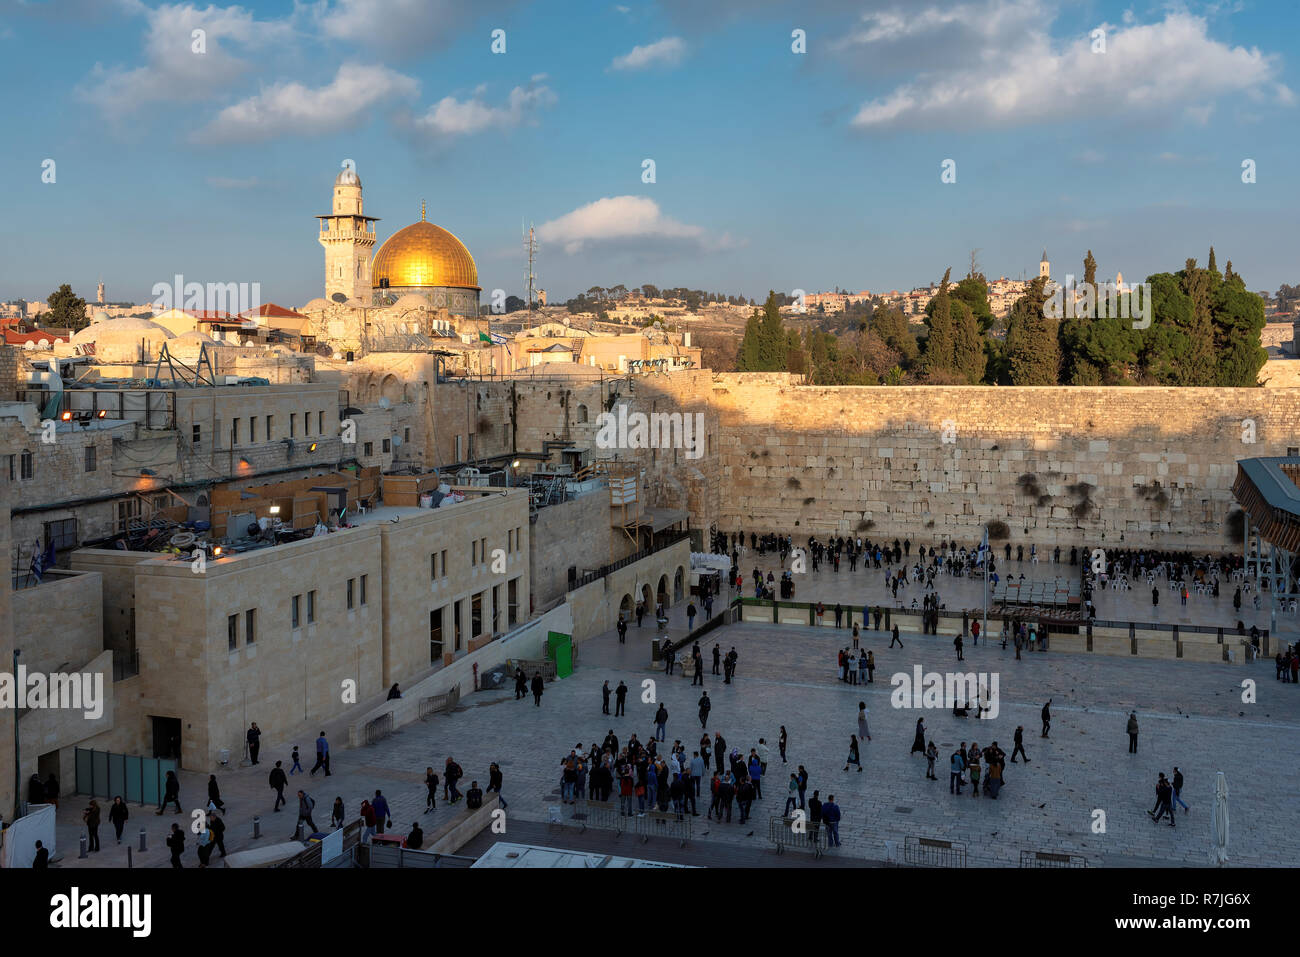 Sunset view of Temple Mount and Western Wall in Jerusalem Old City, Israel. - Stock Image